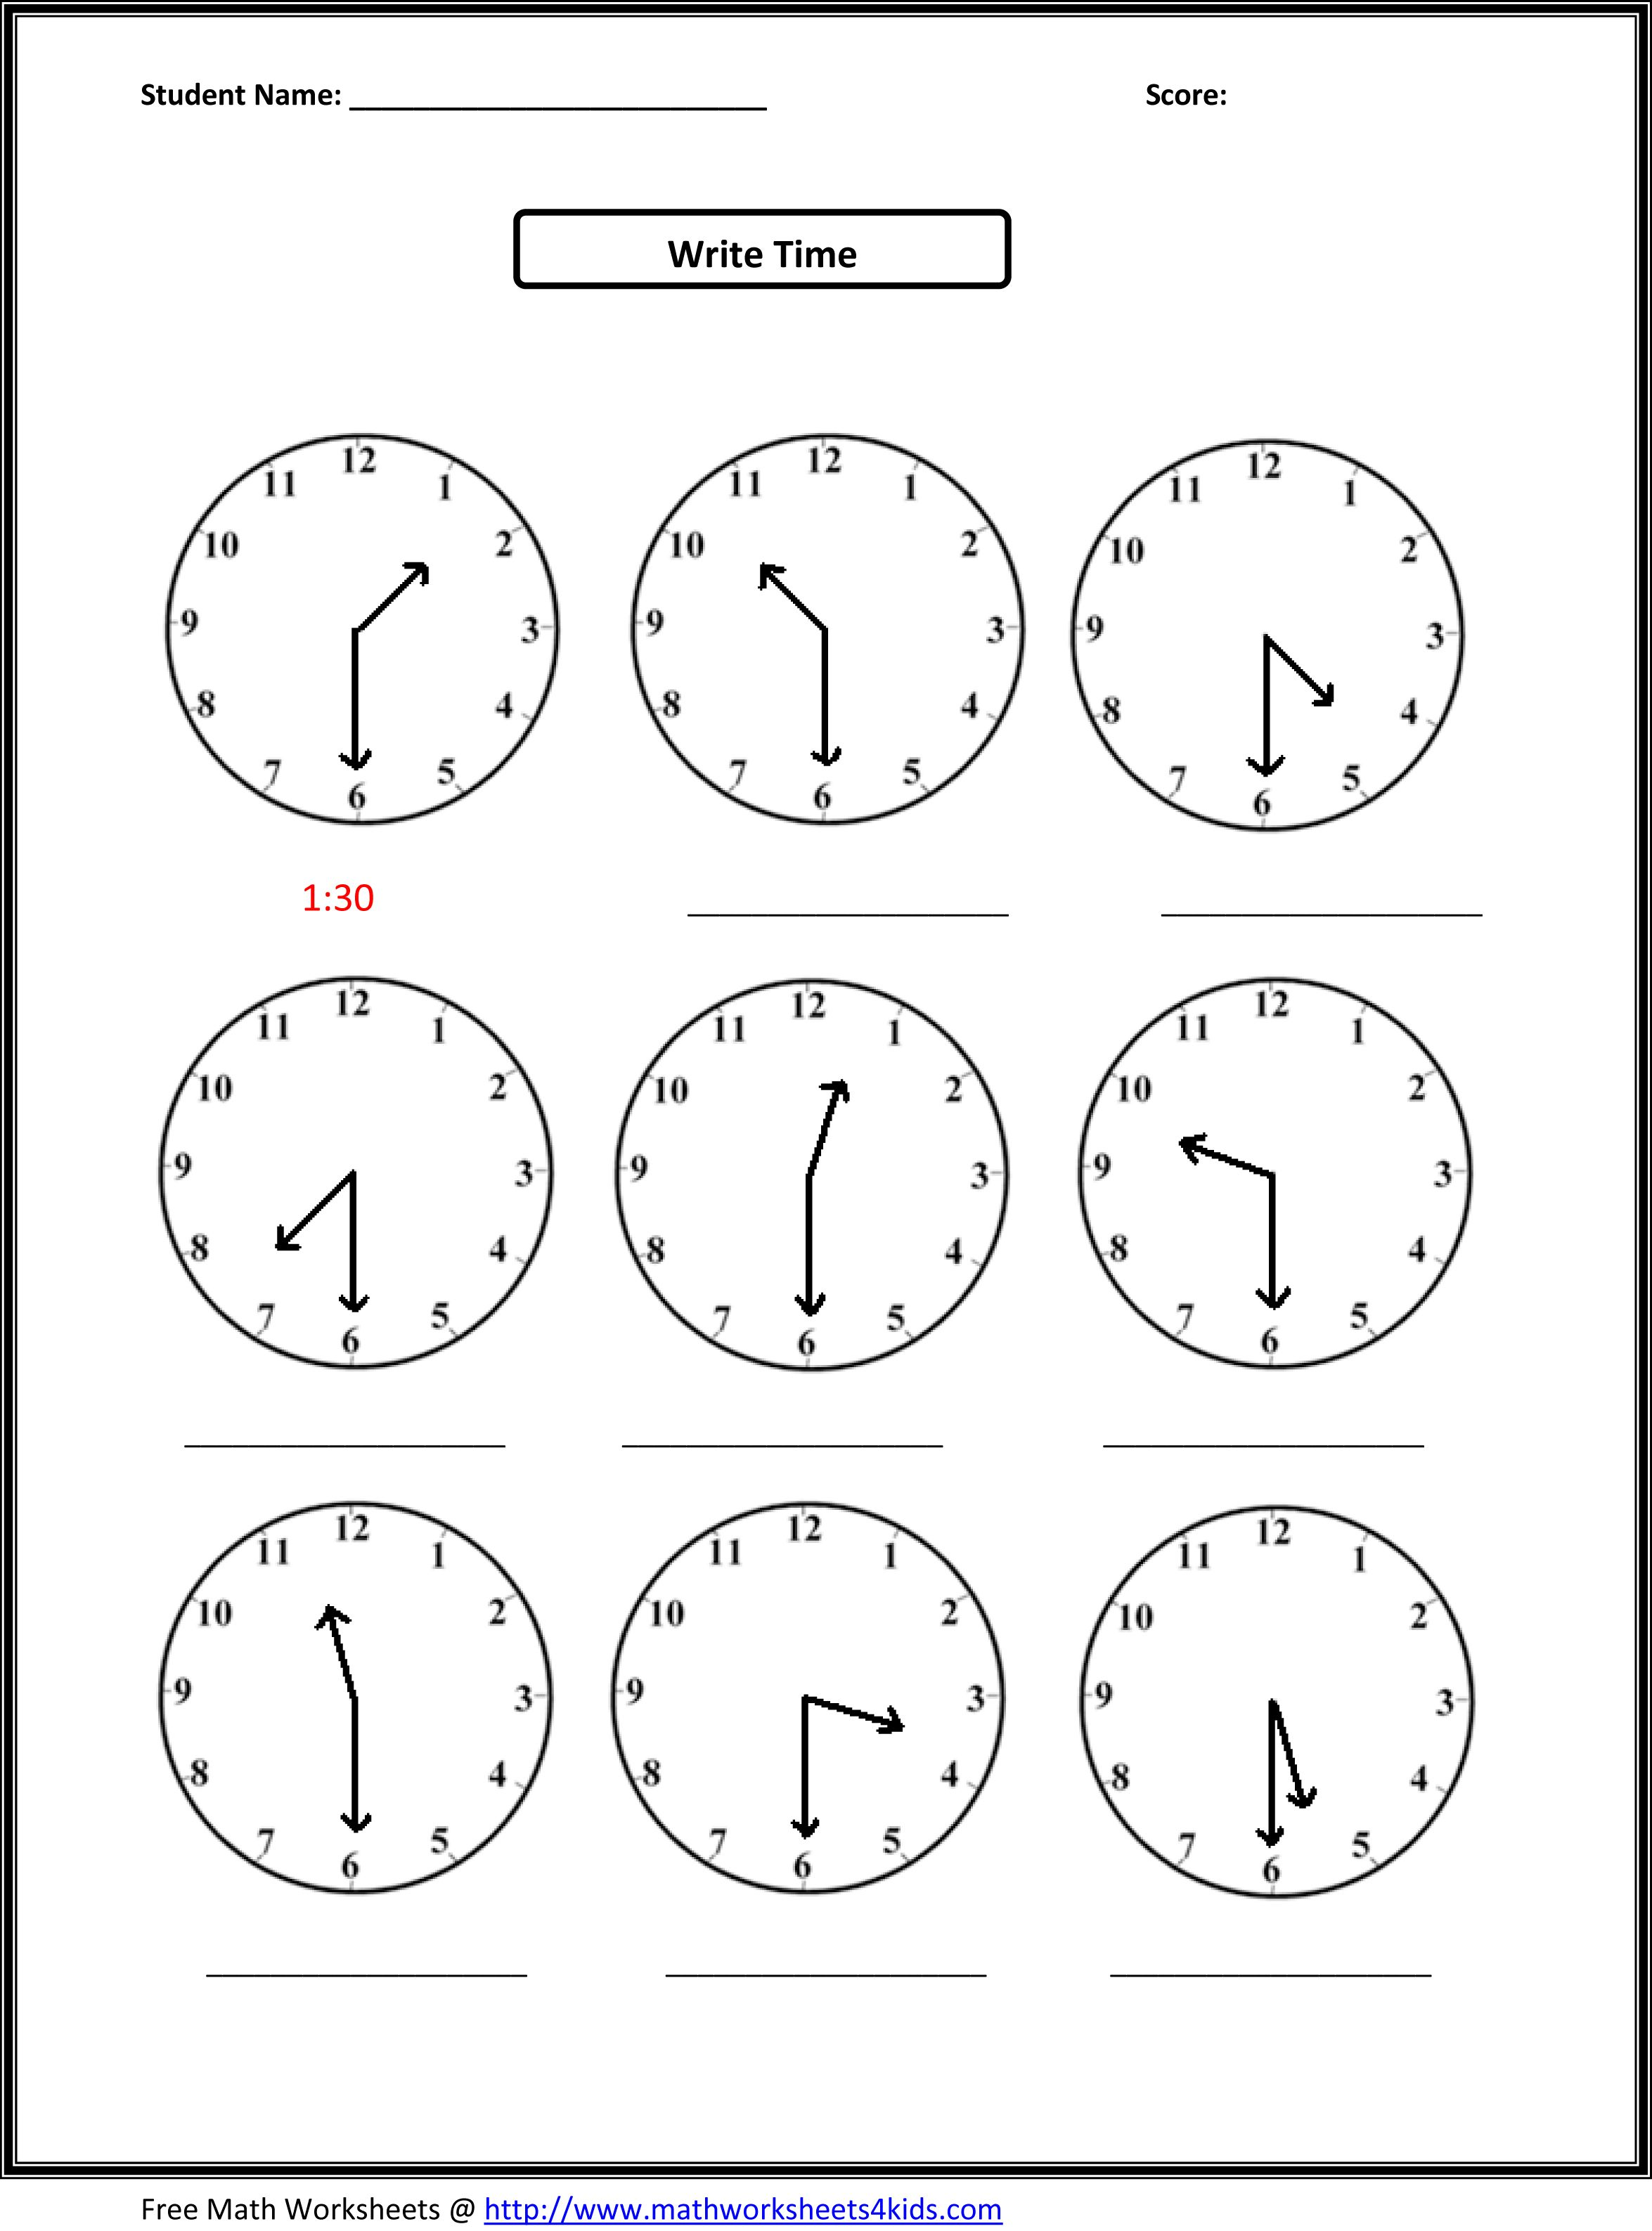 Weirdmailus  Unique Worksheet On Time For Grade   Reocurent With Handsome Free Printable Telling Time Worksheets Nd Grade  Reocurent With Archaic Sentence Worksheet Also Veterans Day Printable Worksheets In Addition Pronoun And Antecedent Worksheets And Tomas And The Library Lady Worksheets As Well As Chemical Dependency Worksheets Additionally Simile Worksheet Pdf From Reocurentcom With Weirdmailus  Handsome Worksheet On Time For Grade   Reocurent With Archaic Free Printable Telling Time Worksheets Nd Grade  Reocurent And Unique Sentence Worksheet Also Veterans Day Printable Worksheets In Addition Pronoun And Antecedent Worksheets From Reocurentcom